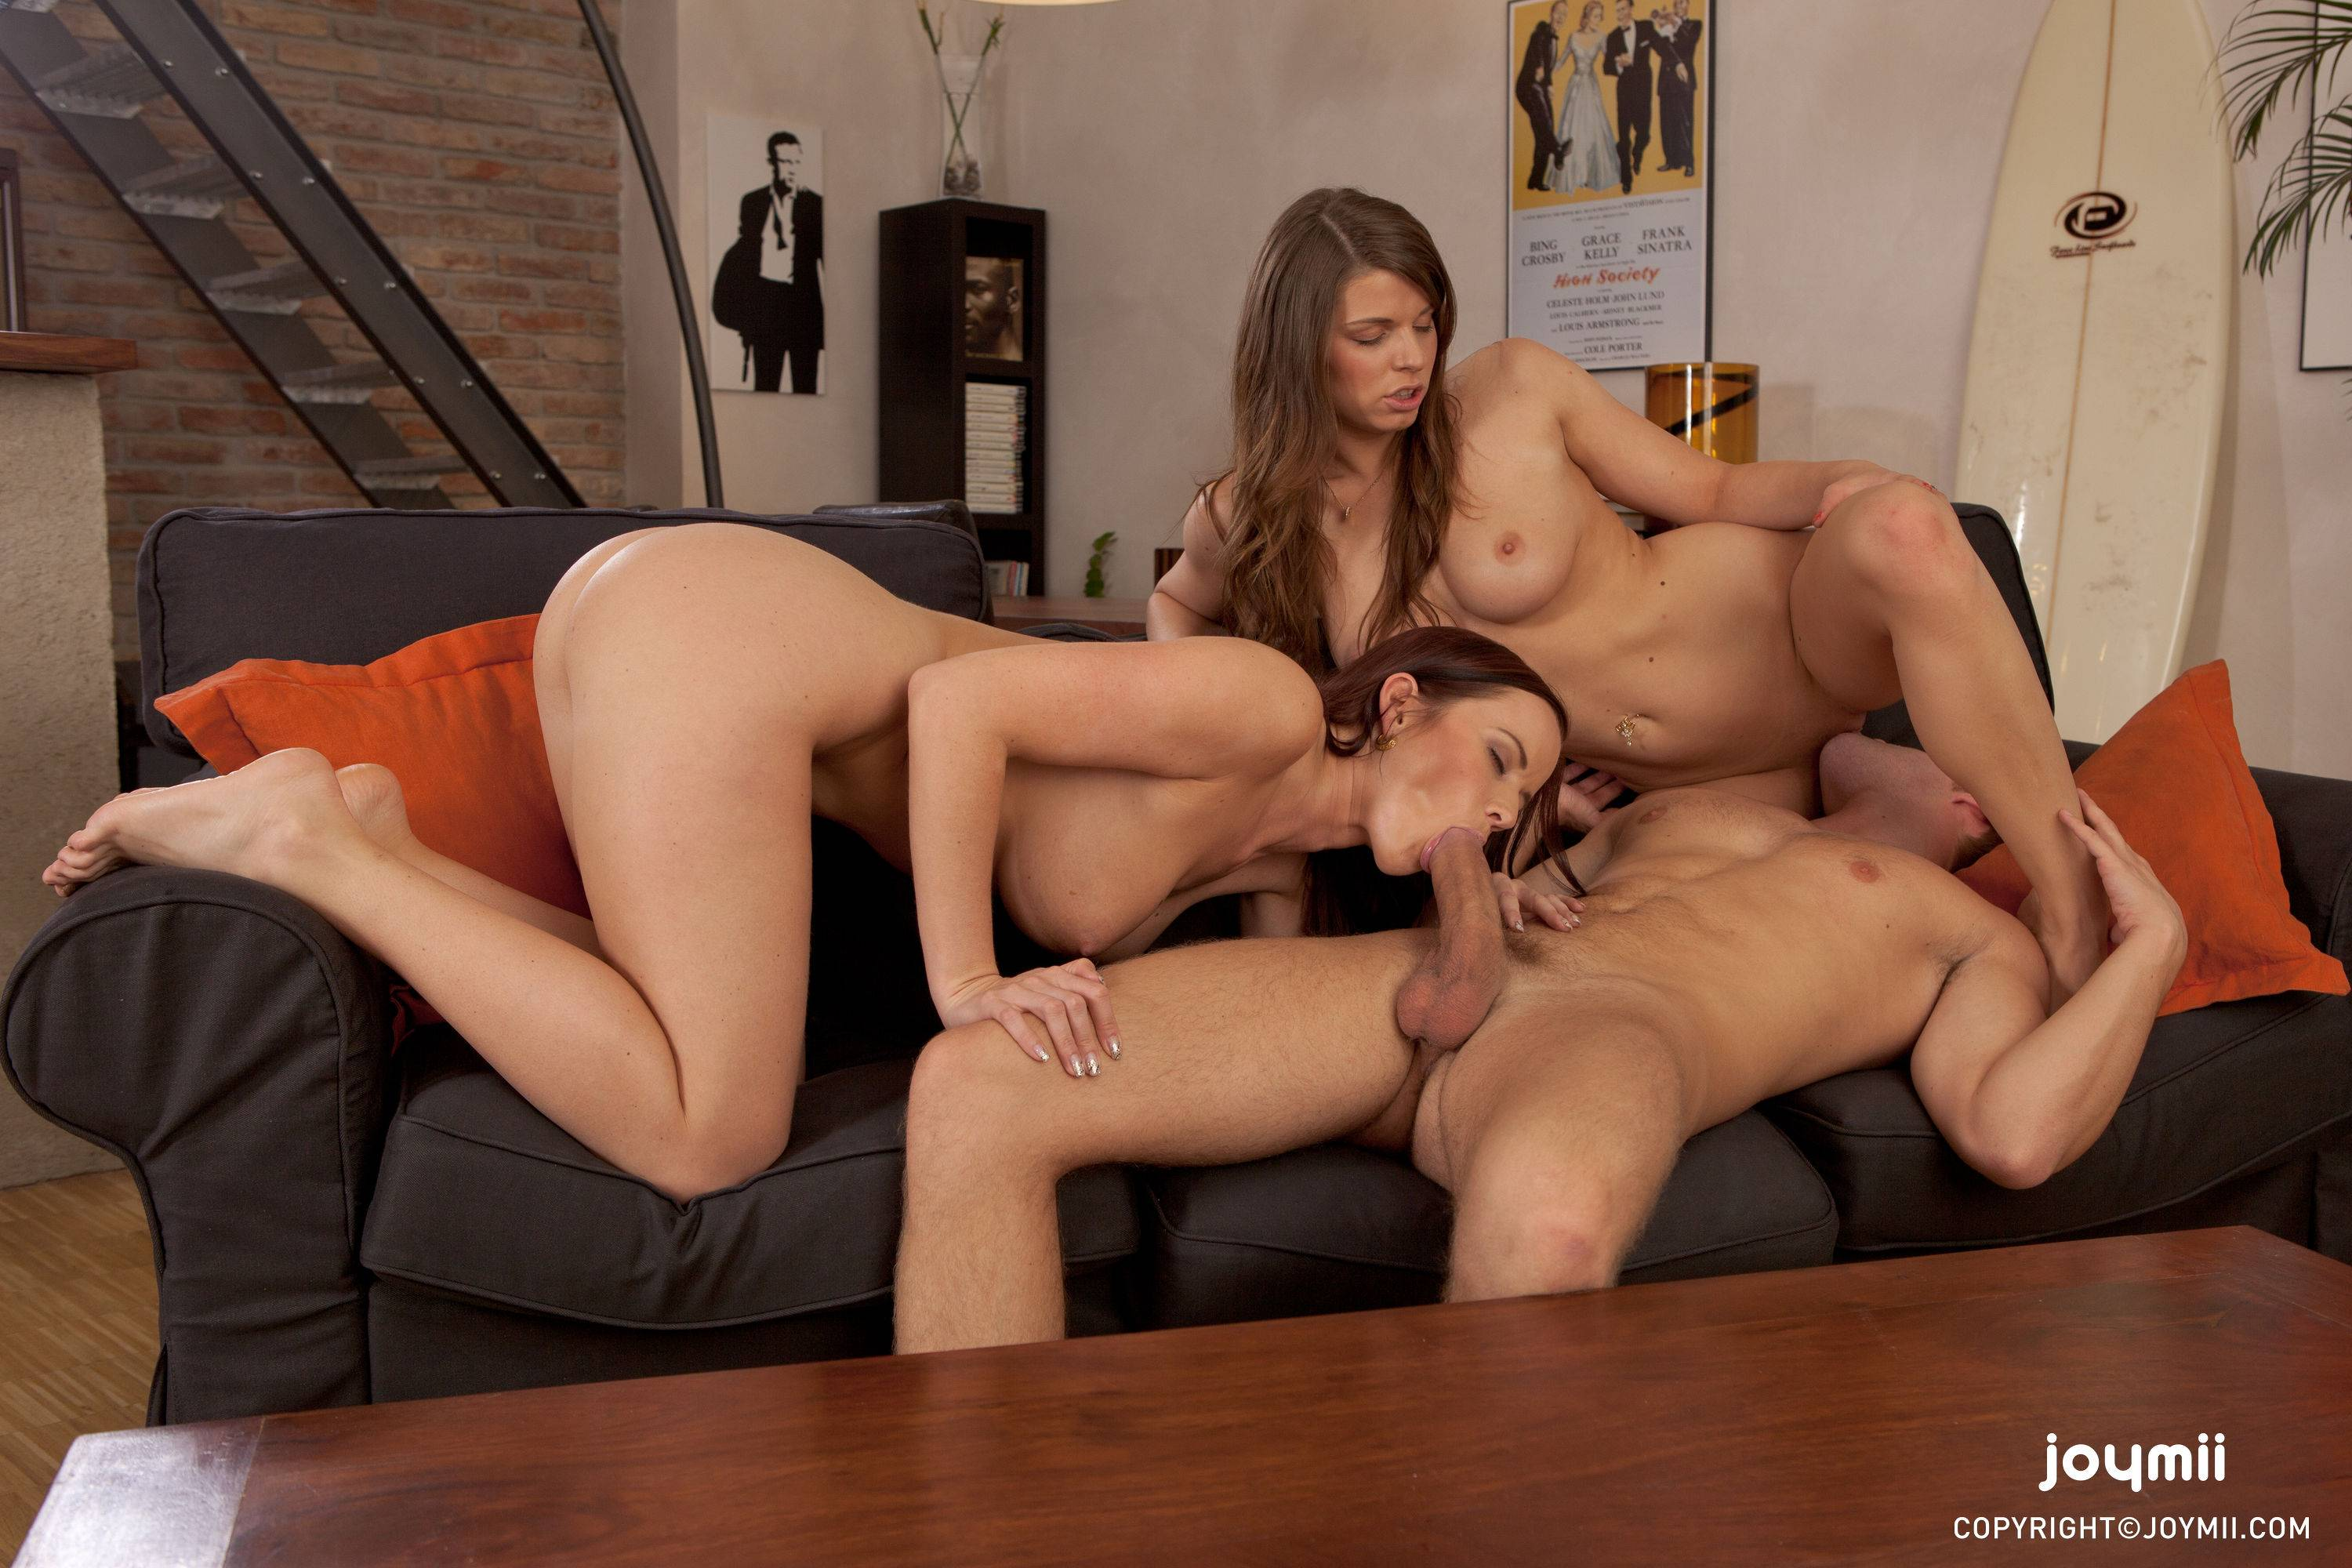 beautiful threesome free porn videos - group